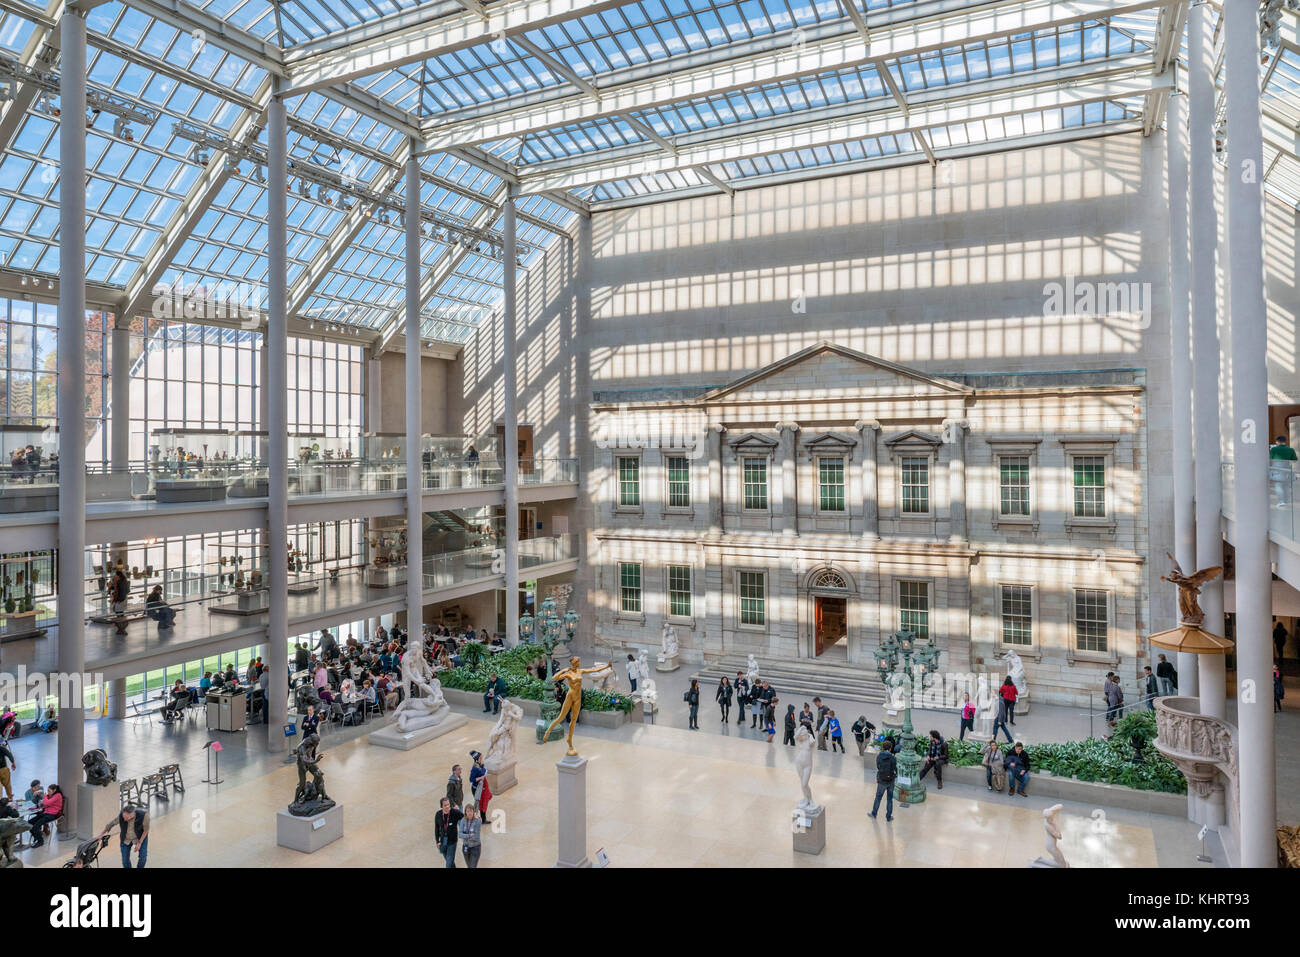 Interior of the Metropolitan Museum of Art, 5th Avenue, Manhattan, New York City, NY, USA - Stock Image